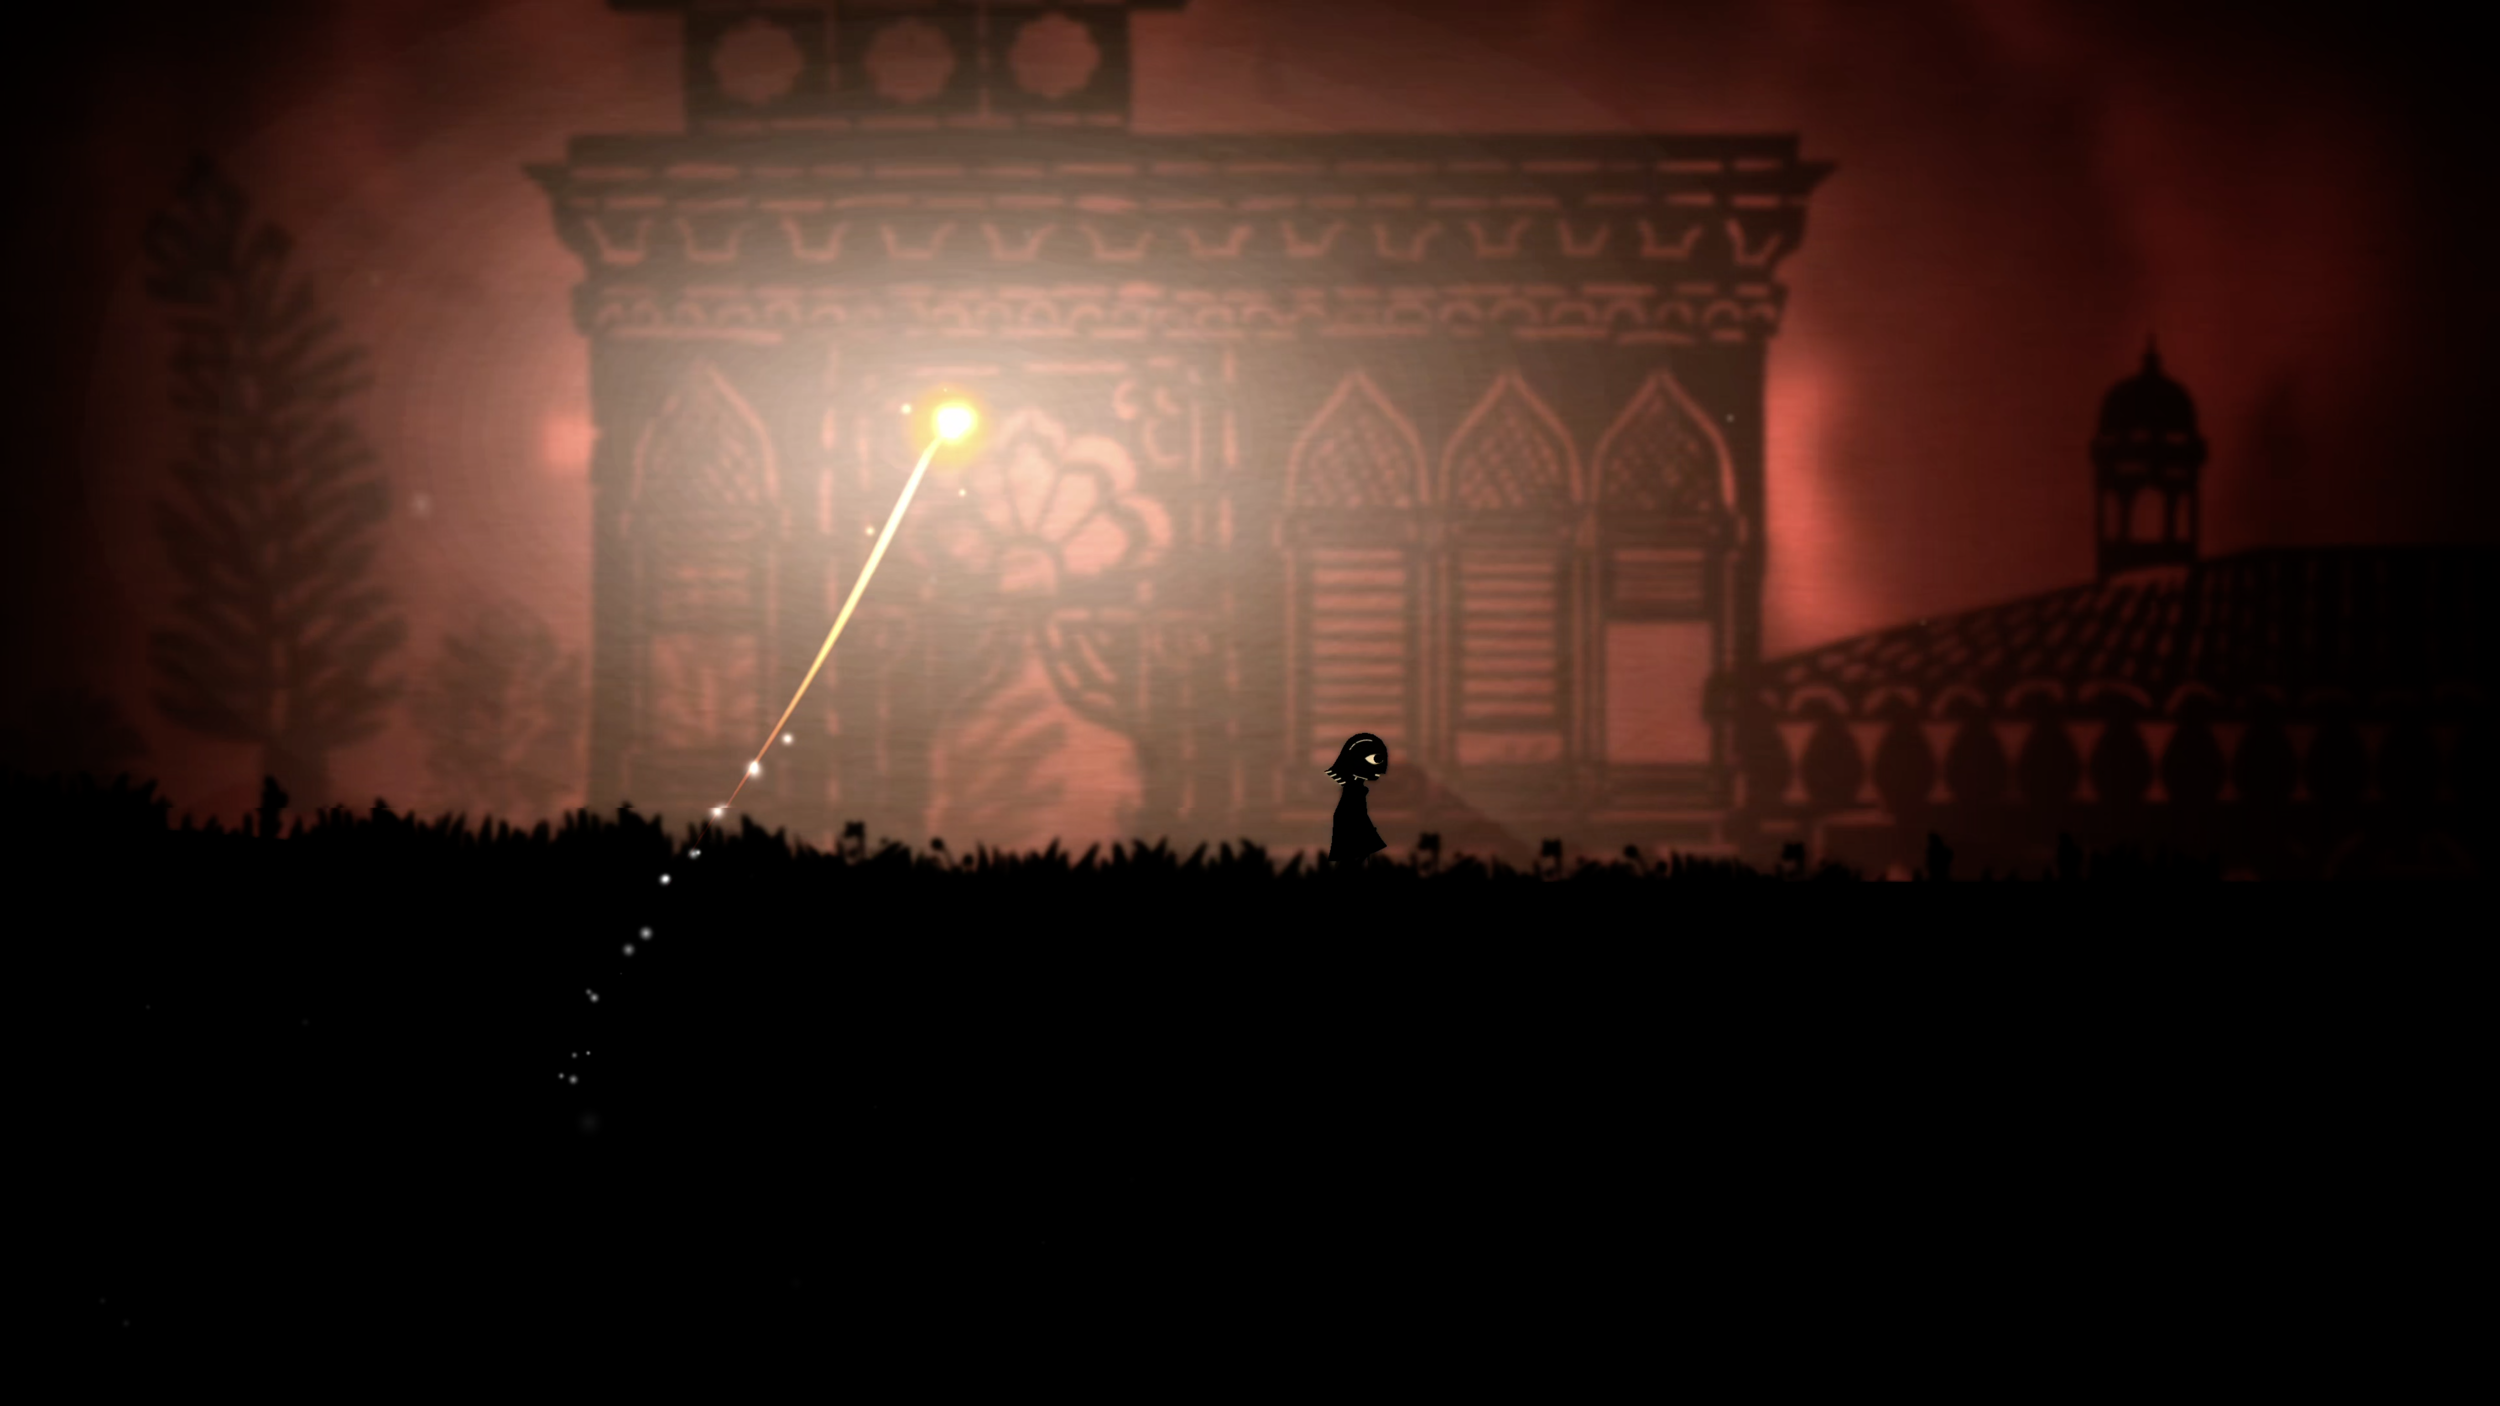 In Projection: First Light you solve puzzles with the help of a magic light that you can manipulate.